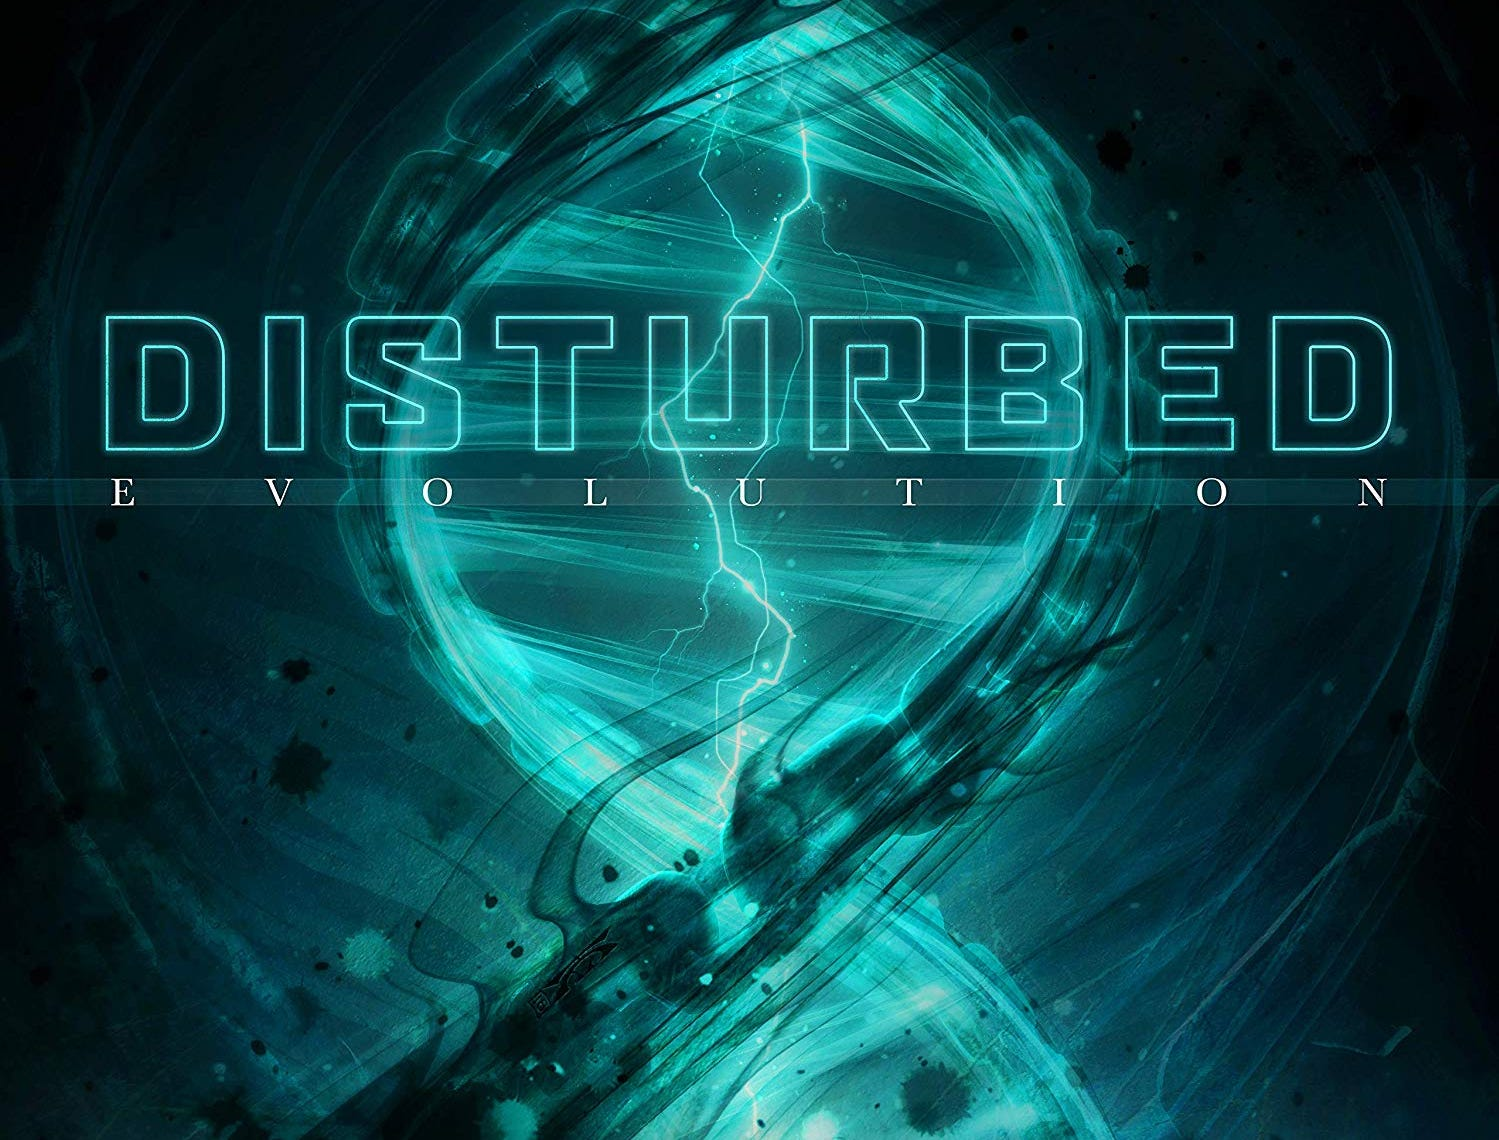 Local CD pick: Evolution by Disturbed